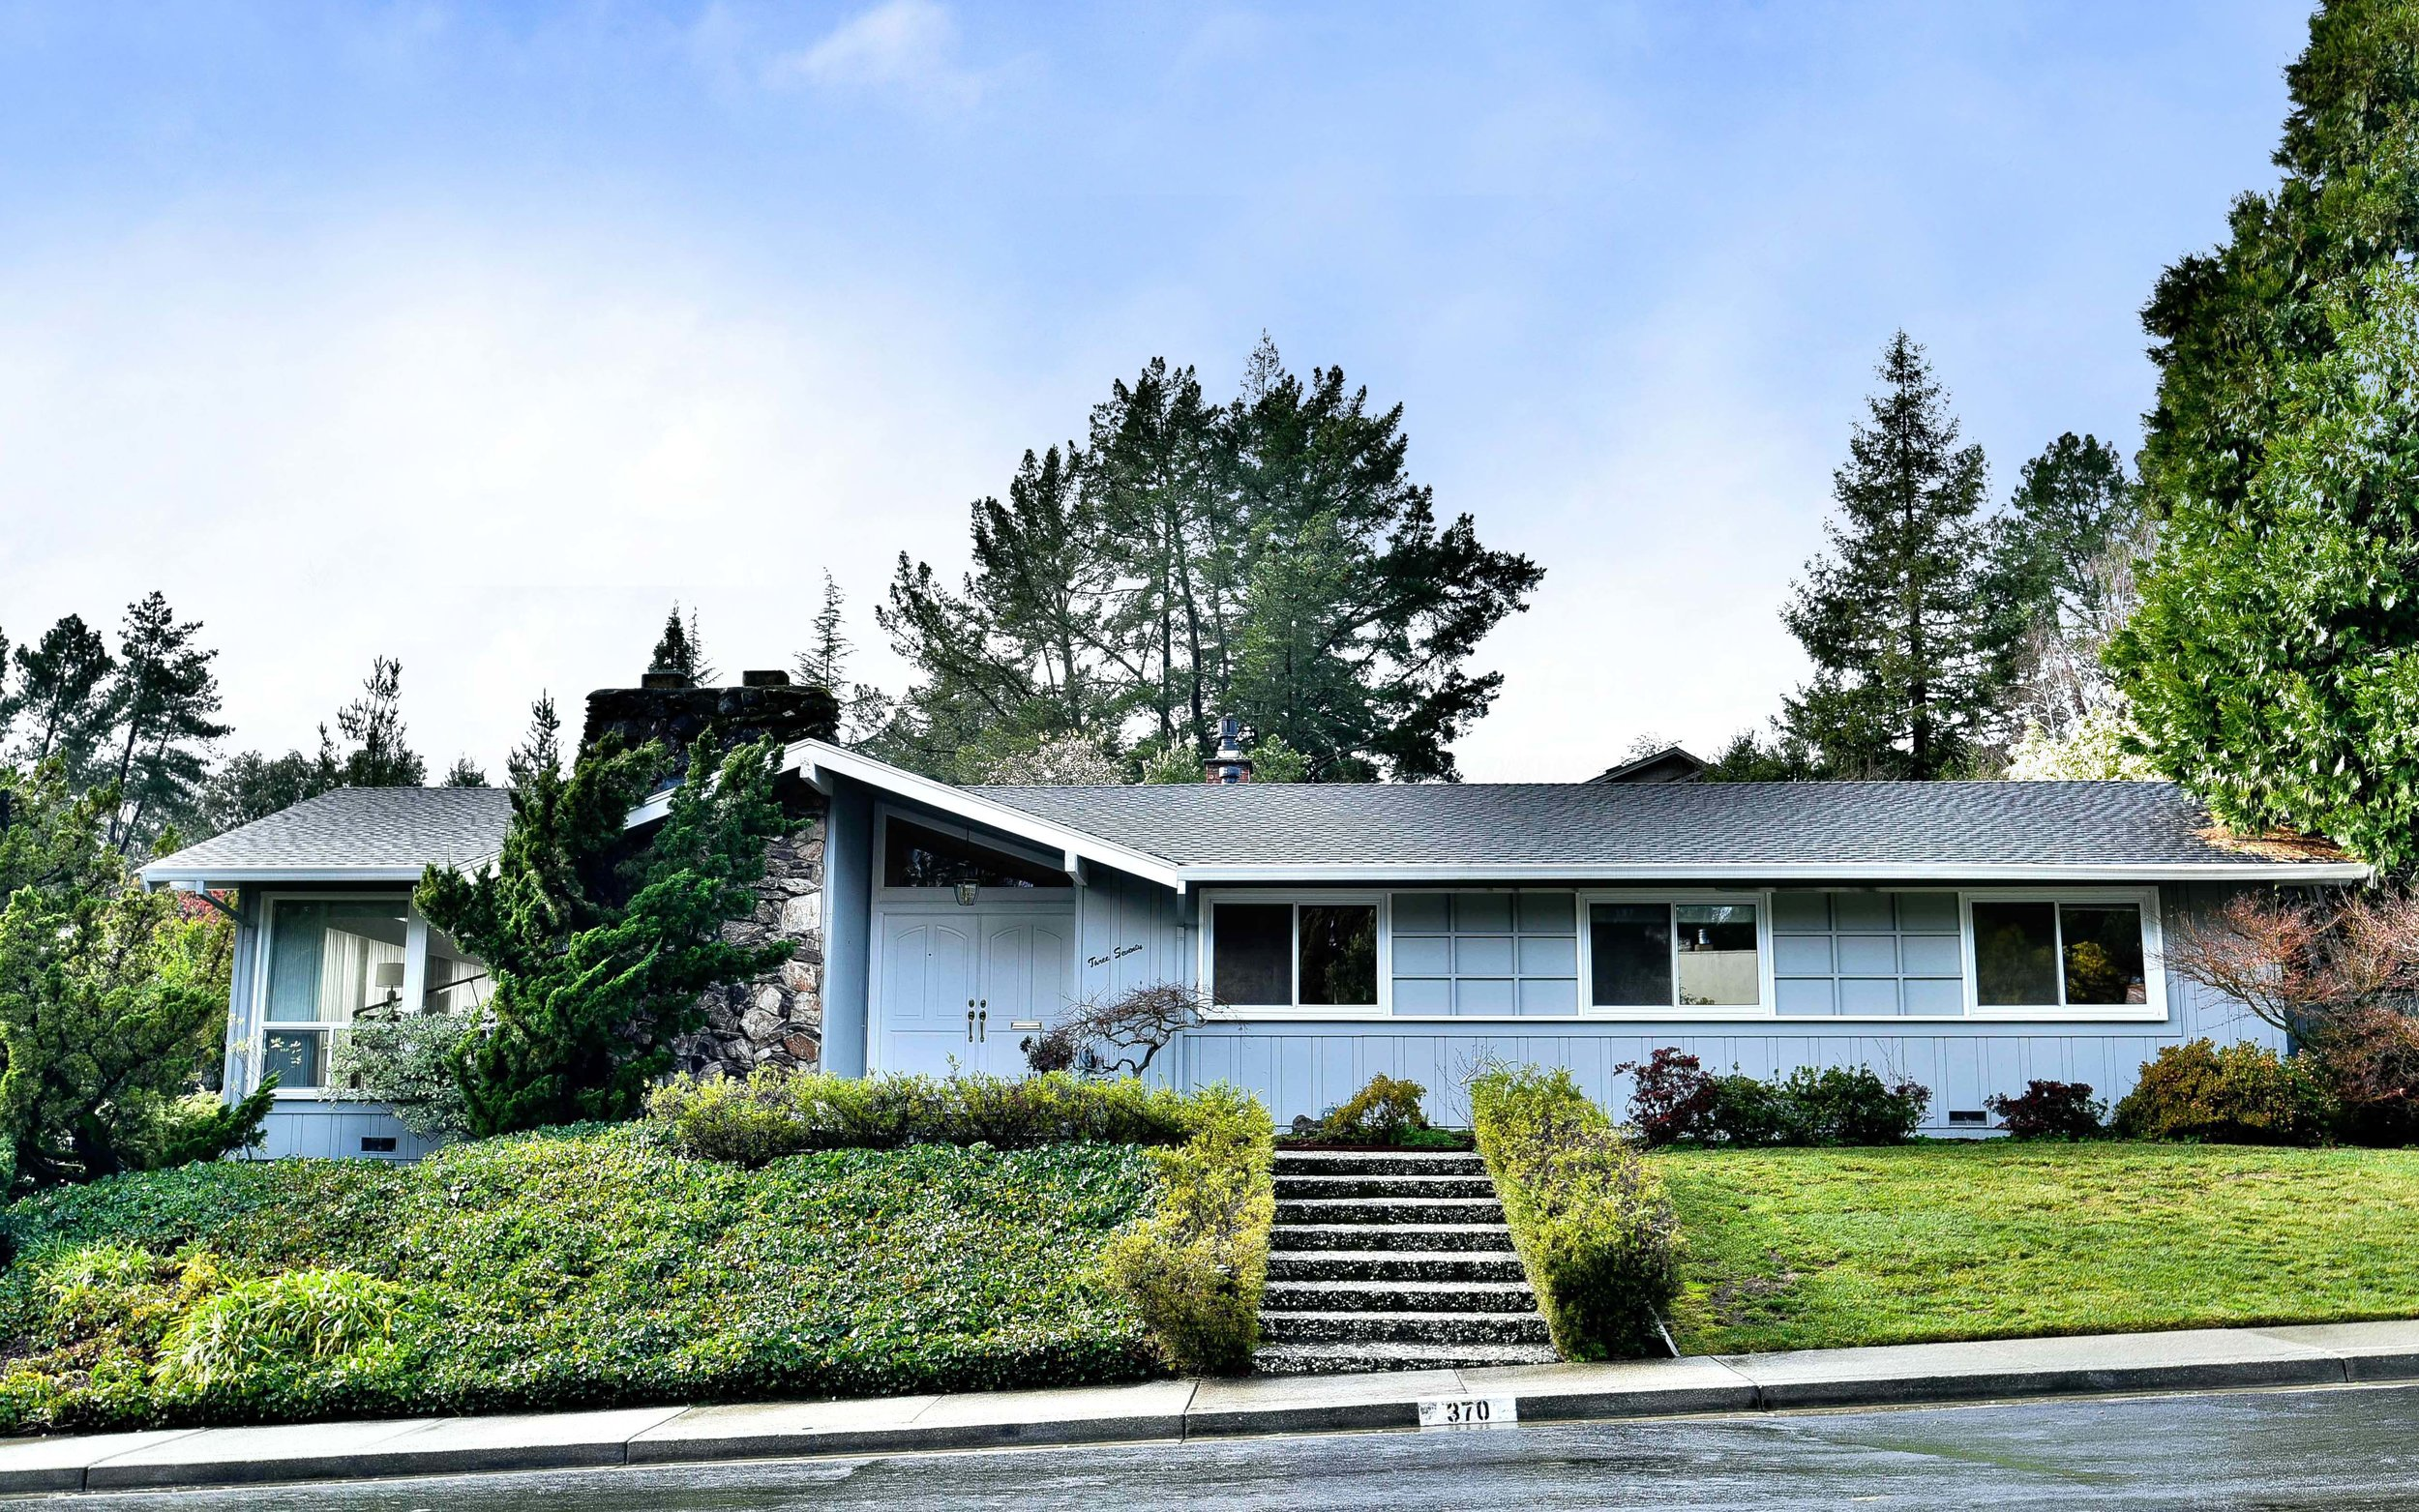 370 donald drive, moraga, ca  sold: $1,325,000 represented seller